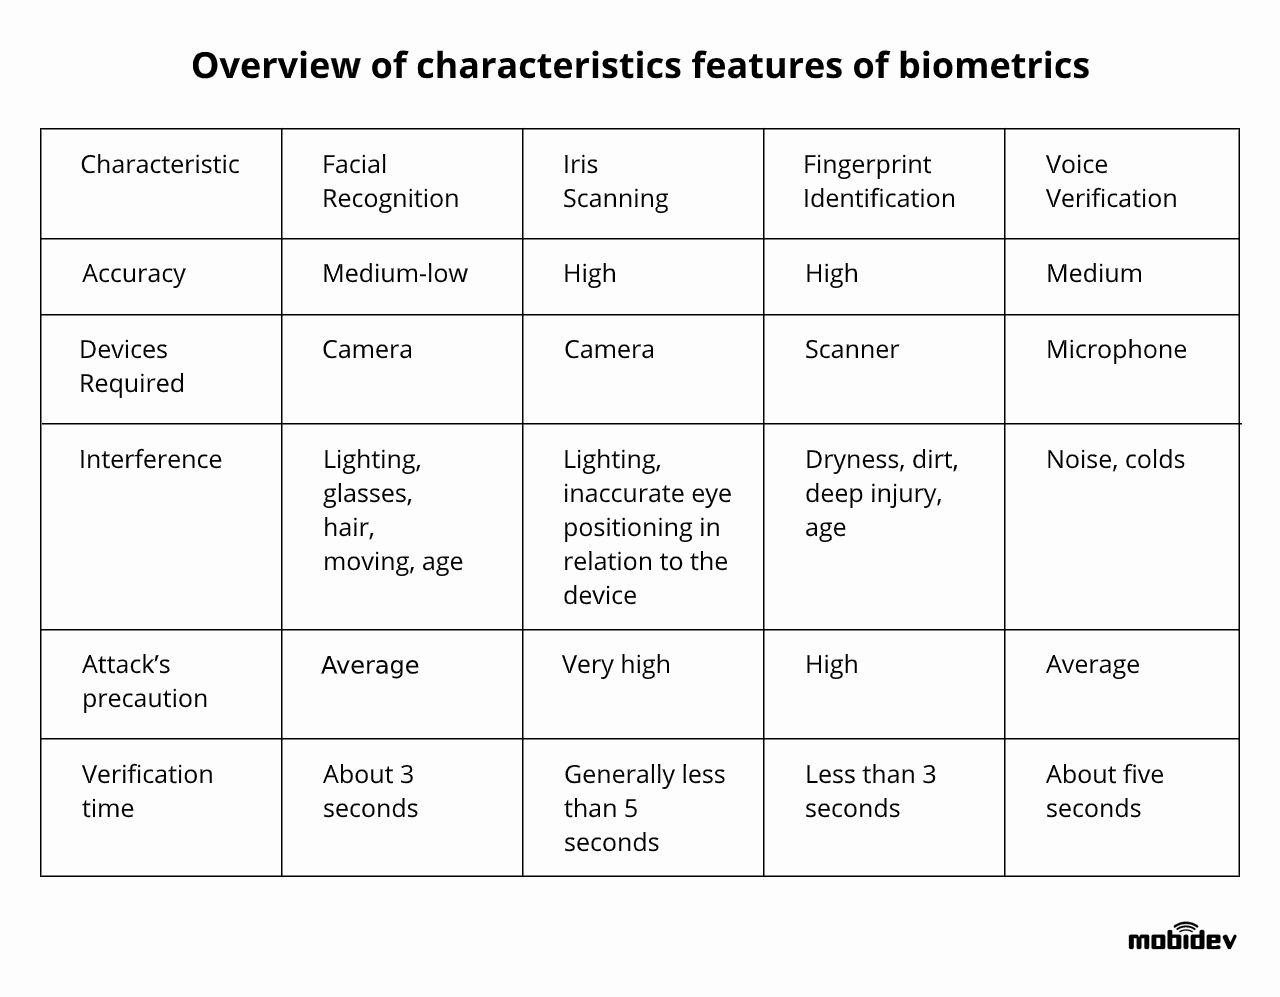 Overview of characteristics features of biometrics technology